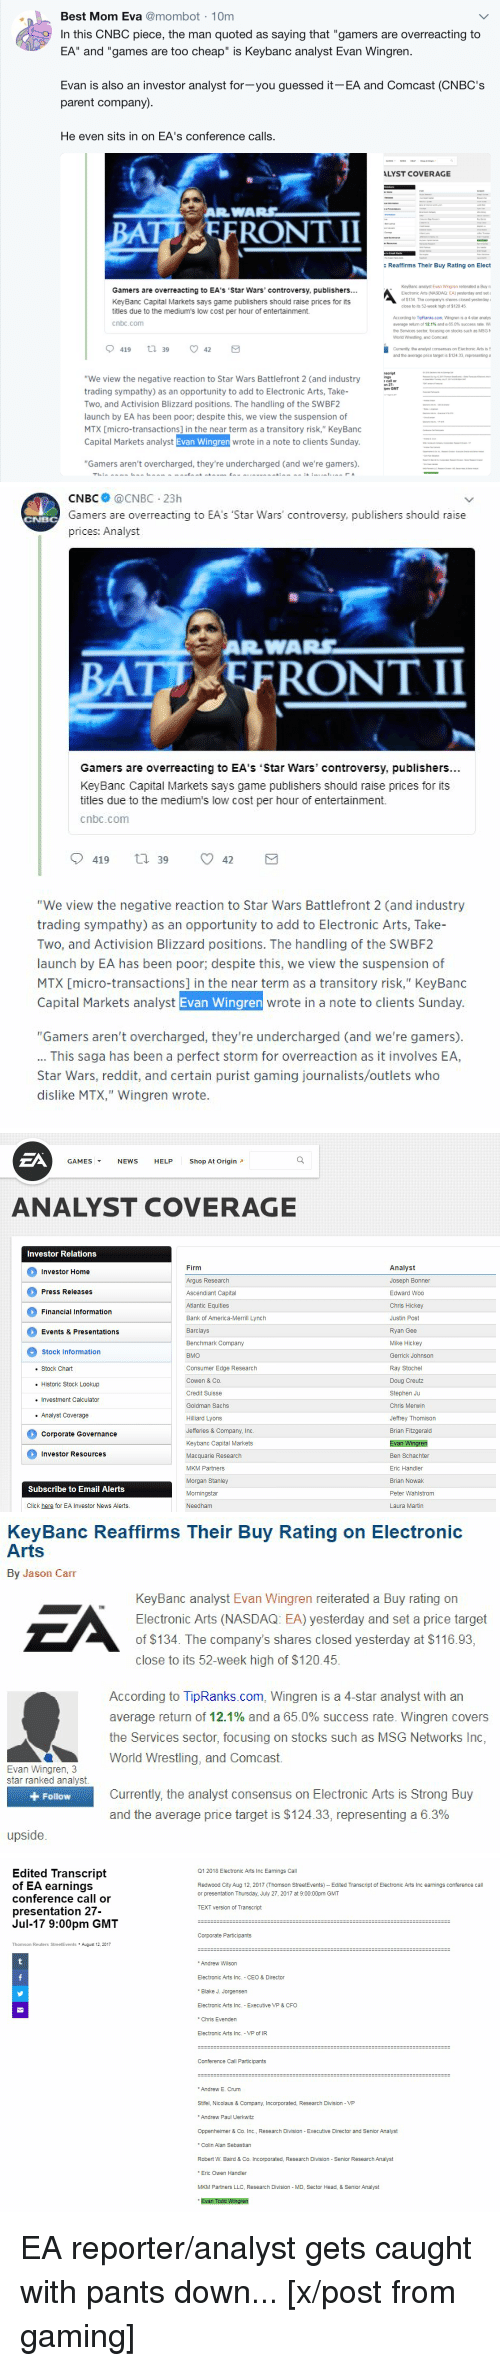 "America, Click, and Doug: Best Mom Eva@mombot 1Om  In this CNBC piece, the man quoted as saying that ""gamers are overreacting to  EA"" and ""games are too cheap"" is Keybanc analyst Evan Wingren  Evan is also an investor analyst for-you guessed it-EA and Comcast (CNBC's  parent company)  He even sits in on EA's conference calls.  LYST COVERAGE  c Reaffirms Their Buy Rating on Elect  Gamers are overreacting to EA's 'Star Wars' controversy, publishers...  KeyBanc Capital Markets says game publishers should raise prices for its  titles due to the medium's low cost per hour of entertainment.  cnbc.com  . KeyBanc analyst Evan Wingren reiterated a Buy r  Electronic Arts (NASDAQ. EA) yesterday and set  of $134. The company's shares closed yesterday  close to its 52-week high of $12045  According to TipRanks.com, Wingren is a 4-star analys  average return of 12.1% and 65 0% success rate Wi  the Services sector, focusing on stocks such as MSG  World Wrestling, and Comcast.  Currently the analyst consensus on Electronic Arts is S  and the average price target is $124.33, representing a  script  ings  r call or  n 27  ""We view the negative reaction to Star Wars Battlefront 2 (and industry  trading sympathy) as an opportunity to add to Electronic Arts, Take-  Two, and Activision Blizzard positions. The handling of the SWBF2  launch by EA has been poor, despite this, we view the suspension of  MTX [micro-transactions] in the near term as a transitory risk,"" KeyBanc  Capital Markets analyst Evan Wingren wrote in a note to clients Sunday  pm GMT  ""Gamers aren't overcharged, they're undercharged (and we're gamers)   CNBC @CNBC 23h  Gamers are overreacting to EA's 'Star Wars' controversy, publishers should raise  prices: Analyst  BA  TD EFRONT II  Gamers are overreacting to EA's 'Star Wars' controversy, publishers...  KeyBanc Capital Markets says game publishers should raise prices for its  titles due to the medium's low cost per hour of entertainment.  cnbc.conm  419 t 39 42  ""We view the negative reaction to Star Wars Battlefront 2 (and industry  trading sympathy) as an opportunity to add to Electronic Arts, Take-  Two, and Activision Blizzard positions. The handling of the SWBF2  launch by EA has been poor; despite this, we view the suspension of  MTX [micro-transactions] in the near term as a transitory risk,"" KeyBanc  wrote in a note to clients Sunday.  ""Gamers aren't overcharged, they're undercharged (and we're gamers).  This saga has been a perfect storm for overreaction as it involves EA,  Star Wars, reddit, and certain purist gaming journalists/outlets who  dislike MTX,"" Wingren wrote   ZA  GAMES ▼  NEWS  HELP  Shop At Origin  ANALYST COVERAGE  Investor RelationS  Firm  Argus Research  Ascendiant Capital  Atlantic Equities  Bank of America-Merrill Lynclh  Barclays  Benchmark Company  BMO  Consumer Edge Research  Cowen & Co.  Credit Suisse  Goldman Sachs  Hilliard Lyons  Jefferies & Company, Inc.  Keybanc Capital Markets  Macquarie Research  MKM Partners  Morgan Stanley  Morningstar  Needham  Analyst  Joseph Bonner  Edward Woo  Chris Hickey  Justin Post  Ryan Gee  Mike Hickey  Gerrick Johnson  Ray Stochel  Doug Creutz  Stephen Ju  Chris Merwin  Jeffrey Thomison  Brian Fitzgerald  Investor Home  Press Releases  Financial Information  Events & Presentations  Stock Information  . Stock Chart  . Historic Stock Lookup  Investment Calculator  .Analyst Coverage  Corporate Governance  Investor Resources  Ben Schachter  Eric Handler  Brian Nowak  Peter Wahlstrom  Laura Martin  Subscribe to Email Alerts  Click here for EA Investor News Alerts   KeyBanc Reaffirms Their Buy Rating on Electronic  Arts  By Jason Carr  EA  KeyBanc analyst Evan Wingren reiterated a Buy rating on  Electronic Arts (NASDAQ: EA) yesterday and set a price target  of $134. The company's shares closed yesterday at $116.93,  close to its 52-week high of $120.45.  According to TipRanks.com, Wingren is a 4-star analyst with an  average return of 12.1% and a 65.0% success rate. Wingren covers  the Services sector, focusing on stocks such as MSG Networks Inc,  World Wrestling, and Comcast.  Evan Wingren, 3  star ranked analyst  Currently, the analyst consensus on Electronic Arts is Strong Buy  and the average price target is $124.33, representing a 6.3%  + Follow  upside   Edited Transcript  of EA earnings  conference call or  presentation 27-  Jul-17 9:00pm GMT  Q1 2018 Electronic Arts Inc Earnings Call  Redwood City Aug 12, 2017 (Thomson StreetEvents) - Edited Transcript of Electronic Arts Inc earnings conference call  or presentation Thursday, July 27, 2017 at 9:00:00pm GMT  TEXT version of Transcript  Corporate Participants  Thomson Reuters StreetEvents August 12, 2017  Andrew Wilson  Electronic Arts Inc CEO & Director  * Blake J. Jorgensen  Electronic Arts Inc Executive VP & CFO  * Chris Evenden  Electronic Arts Inc VP of IR  Conference Call Participants  * Andrew E. Crum  Stifel, Nicolaus & Company, Incorporated, Research Division - VP  Andrew Paul Uerkwitz  Oppenheimer & Co. Inc., Research Division Executive Director and Senior Analyst  * Colin Alan Sebastian  Robert W. Baird & Co. Incorporated, Research Division Senior Research Analyst  Eric Owen Handler  MKM Partners LLC, Research Division MD, Sector Head, & Senior Analyst  Evan Todd Wingren EA reporter/analyst gets caught with pants down... [x/post from gaming]"